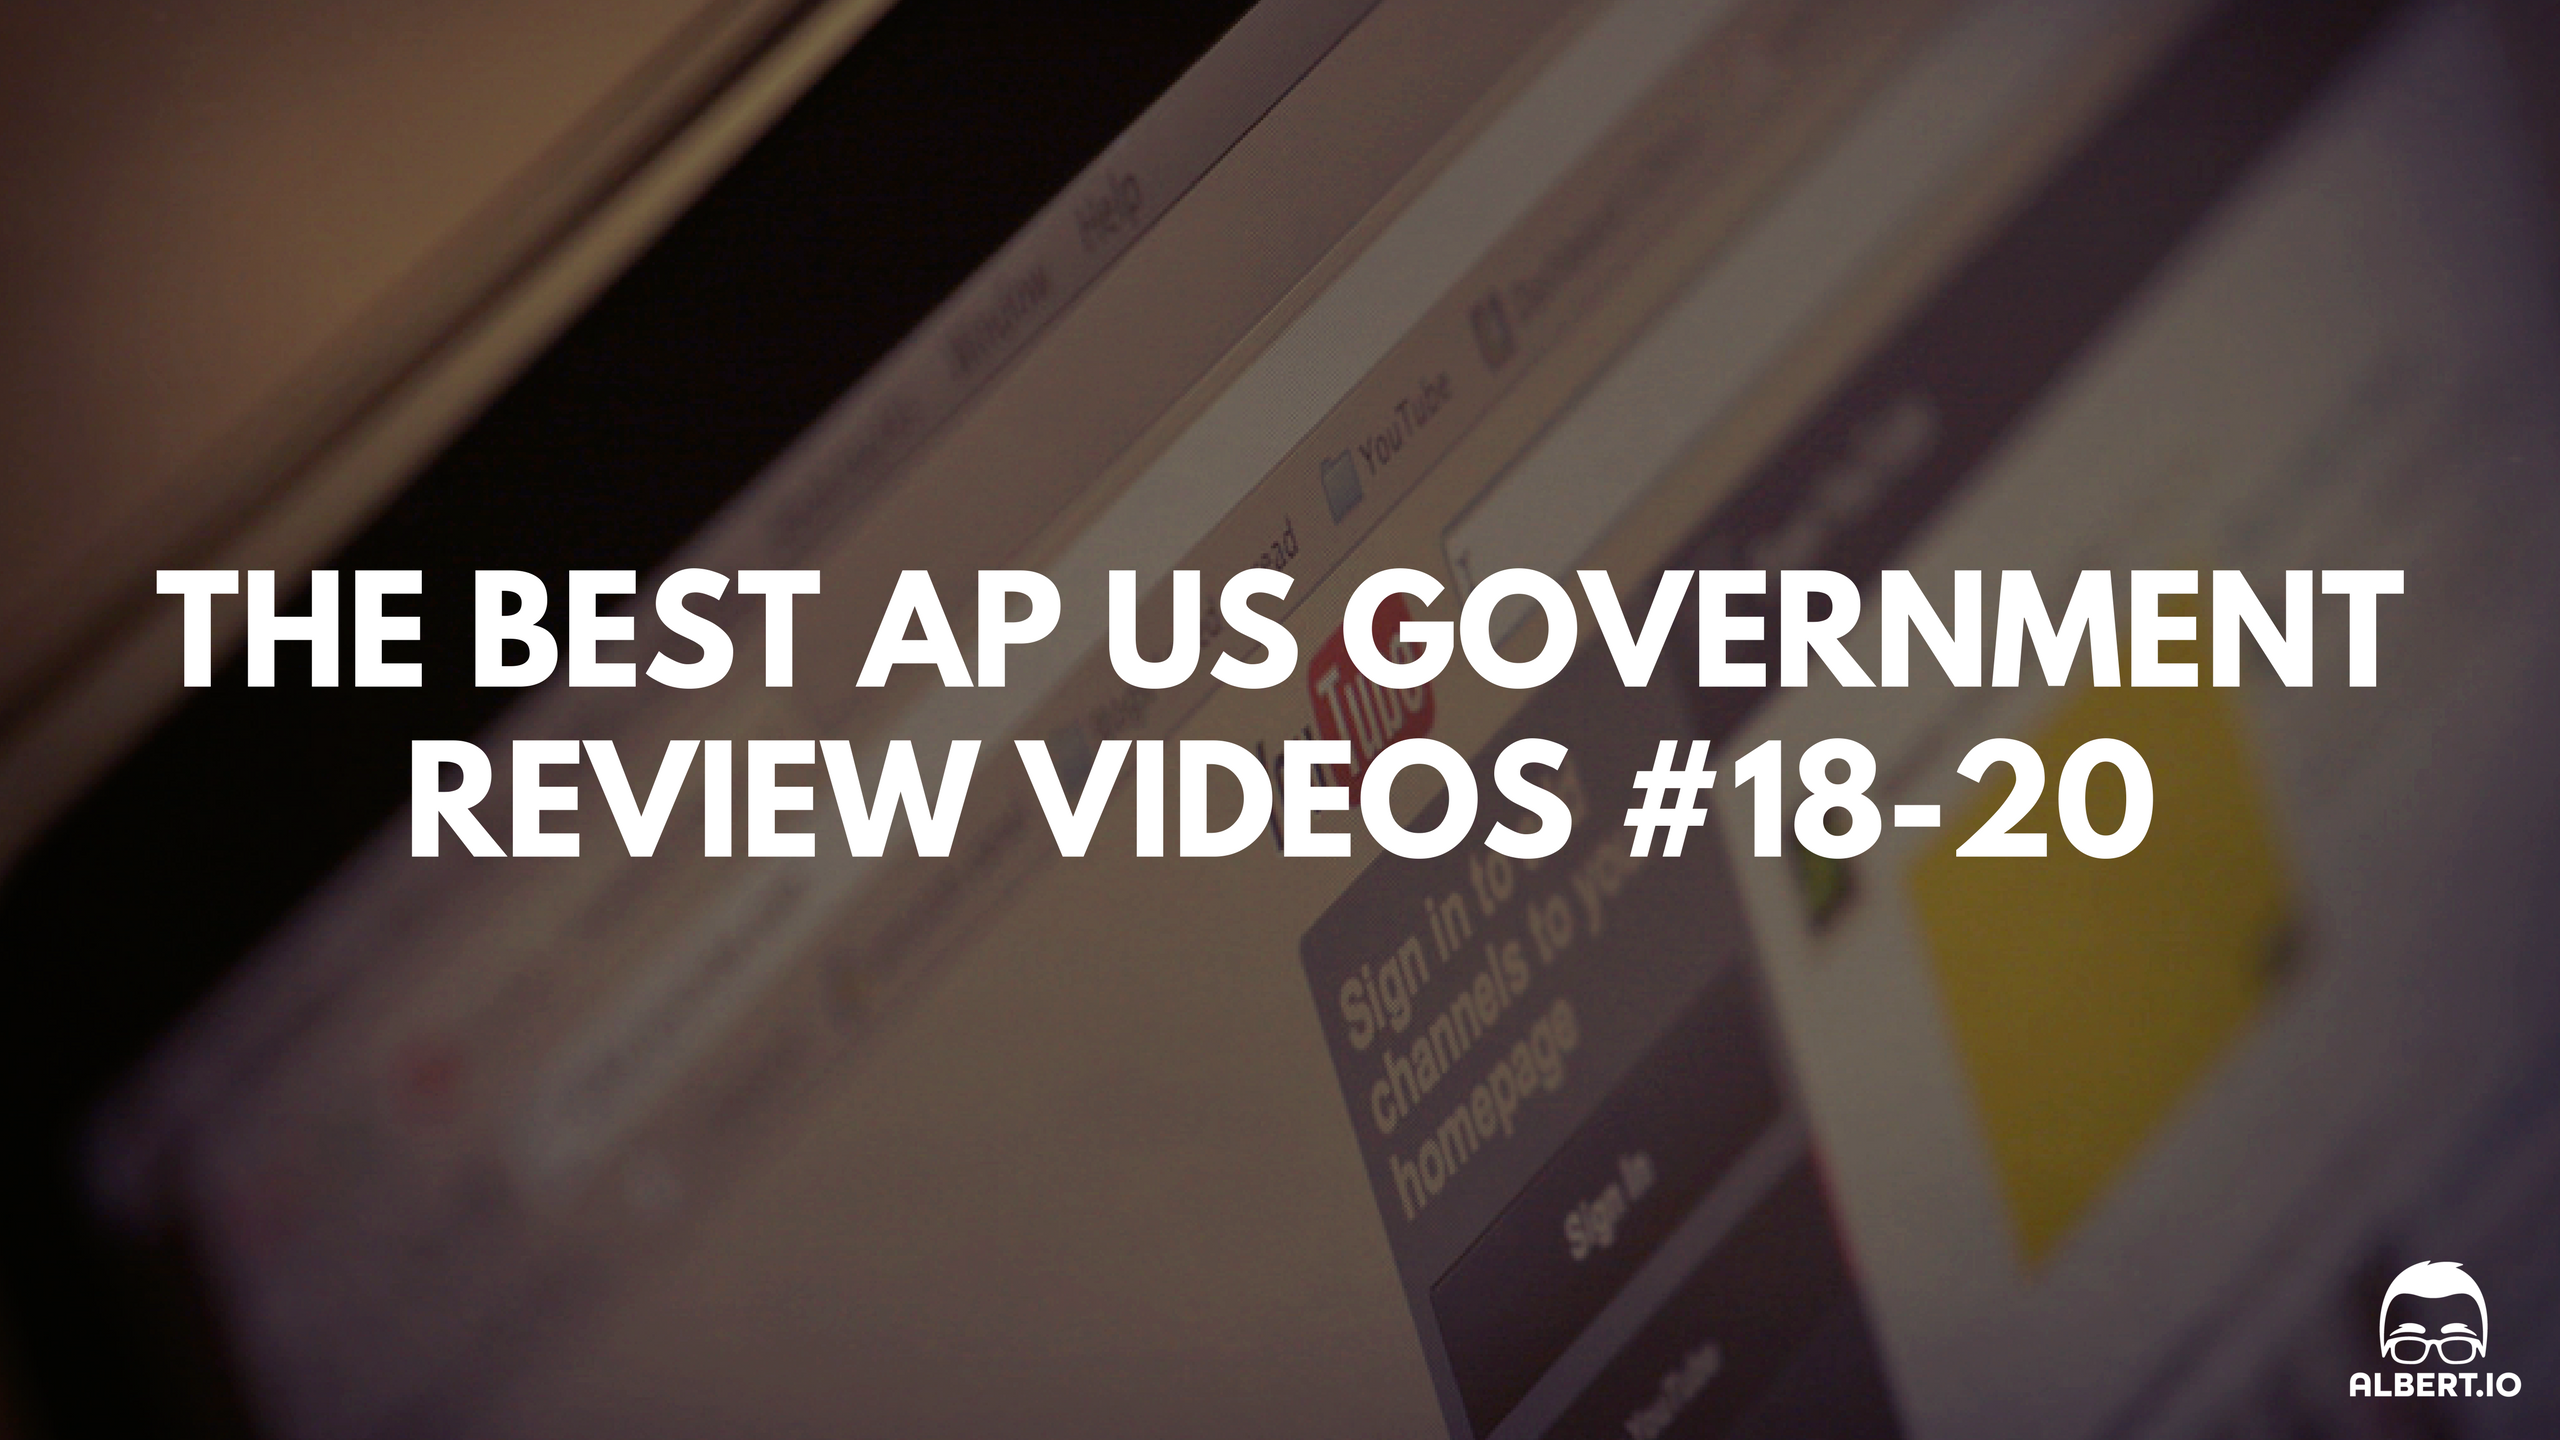 ap government and politics Advanced placement united states government and politics syllabus instructor: patrick martin school: westside high school term: 2017-2018 overview ap us government and politics is a challenging course that will give students an analytical perspective on government and politics in the united states.